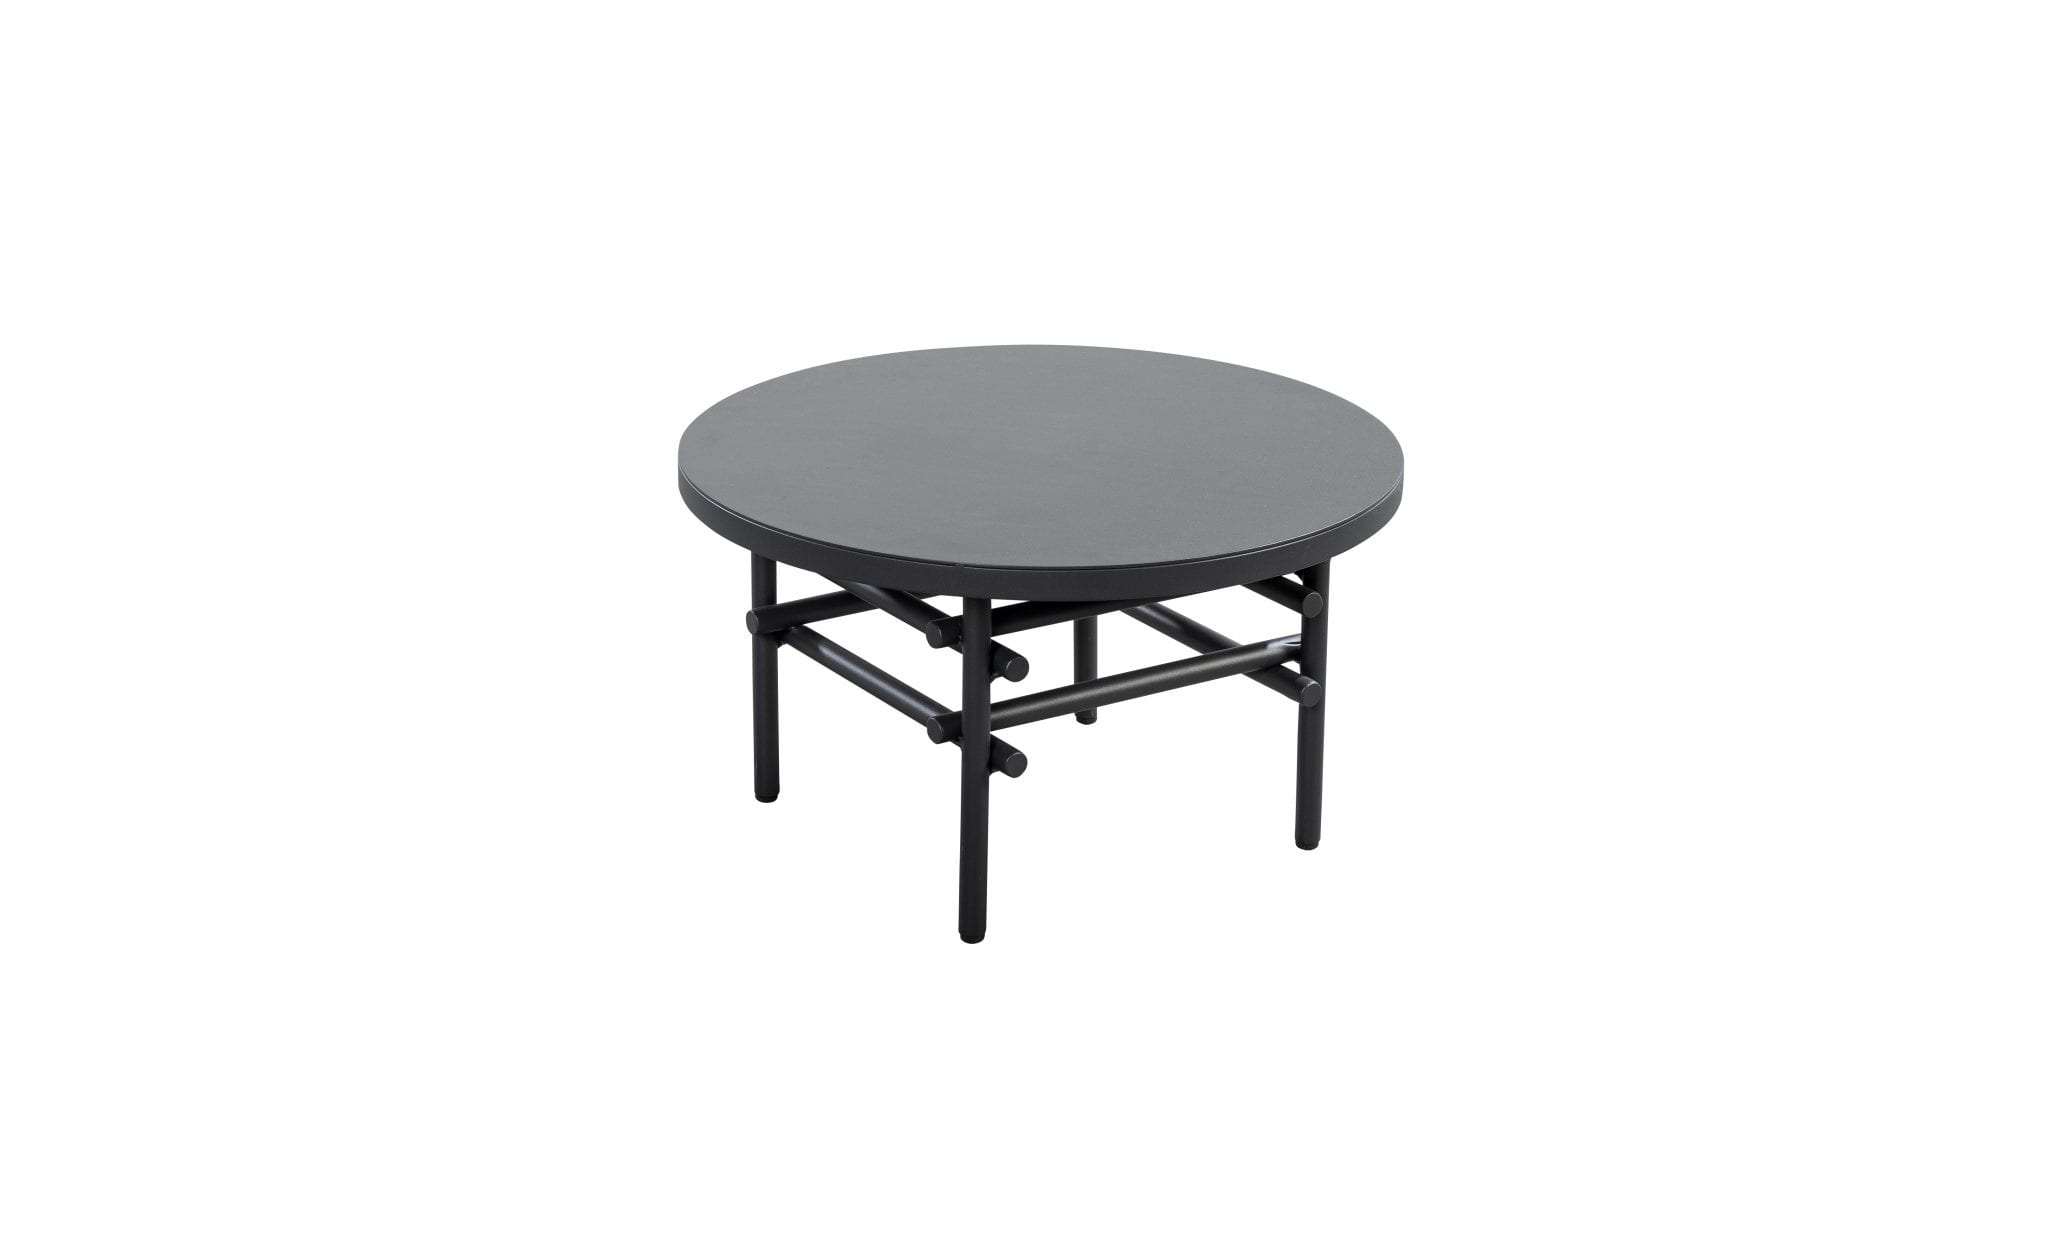 Ki 60 aluminium round side table - dark grey | Yoi Furniture